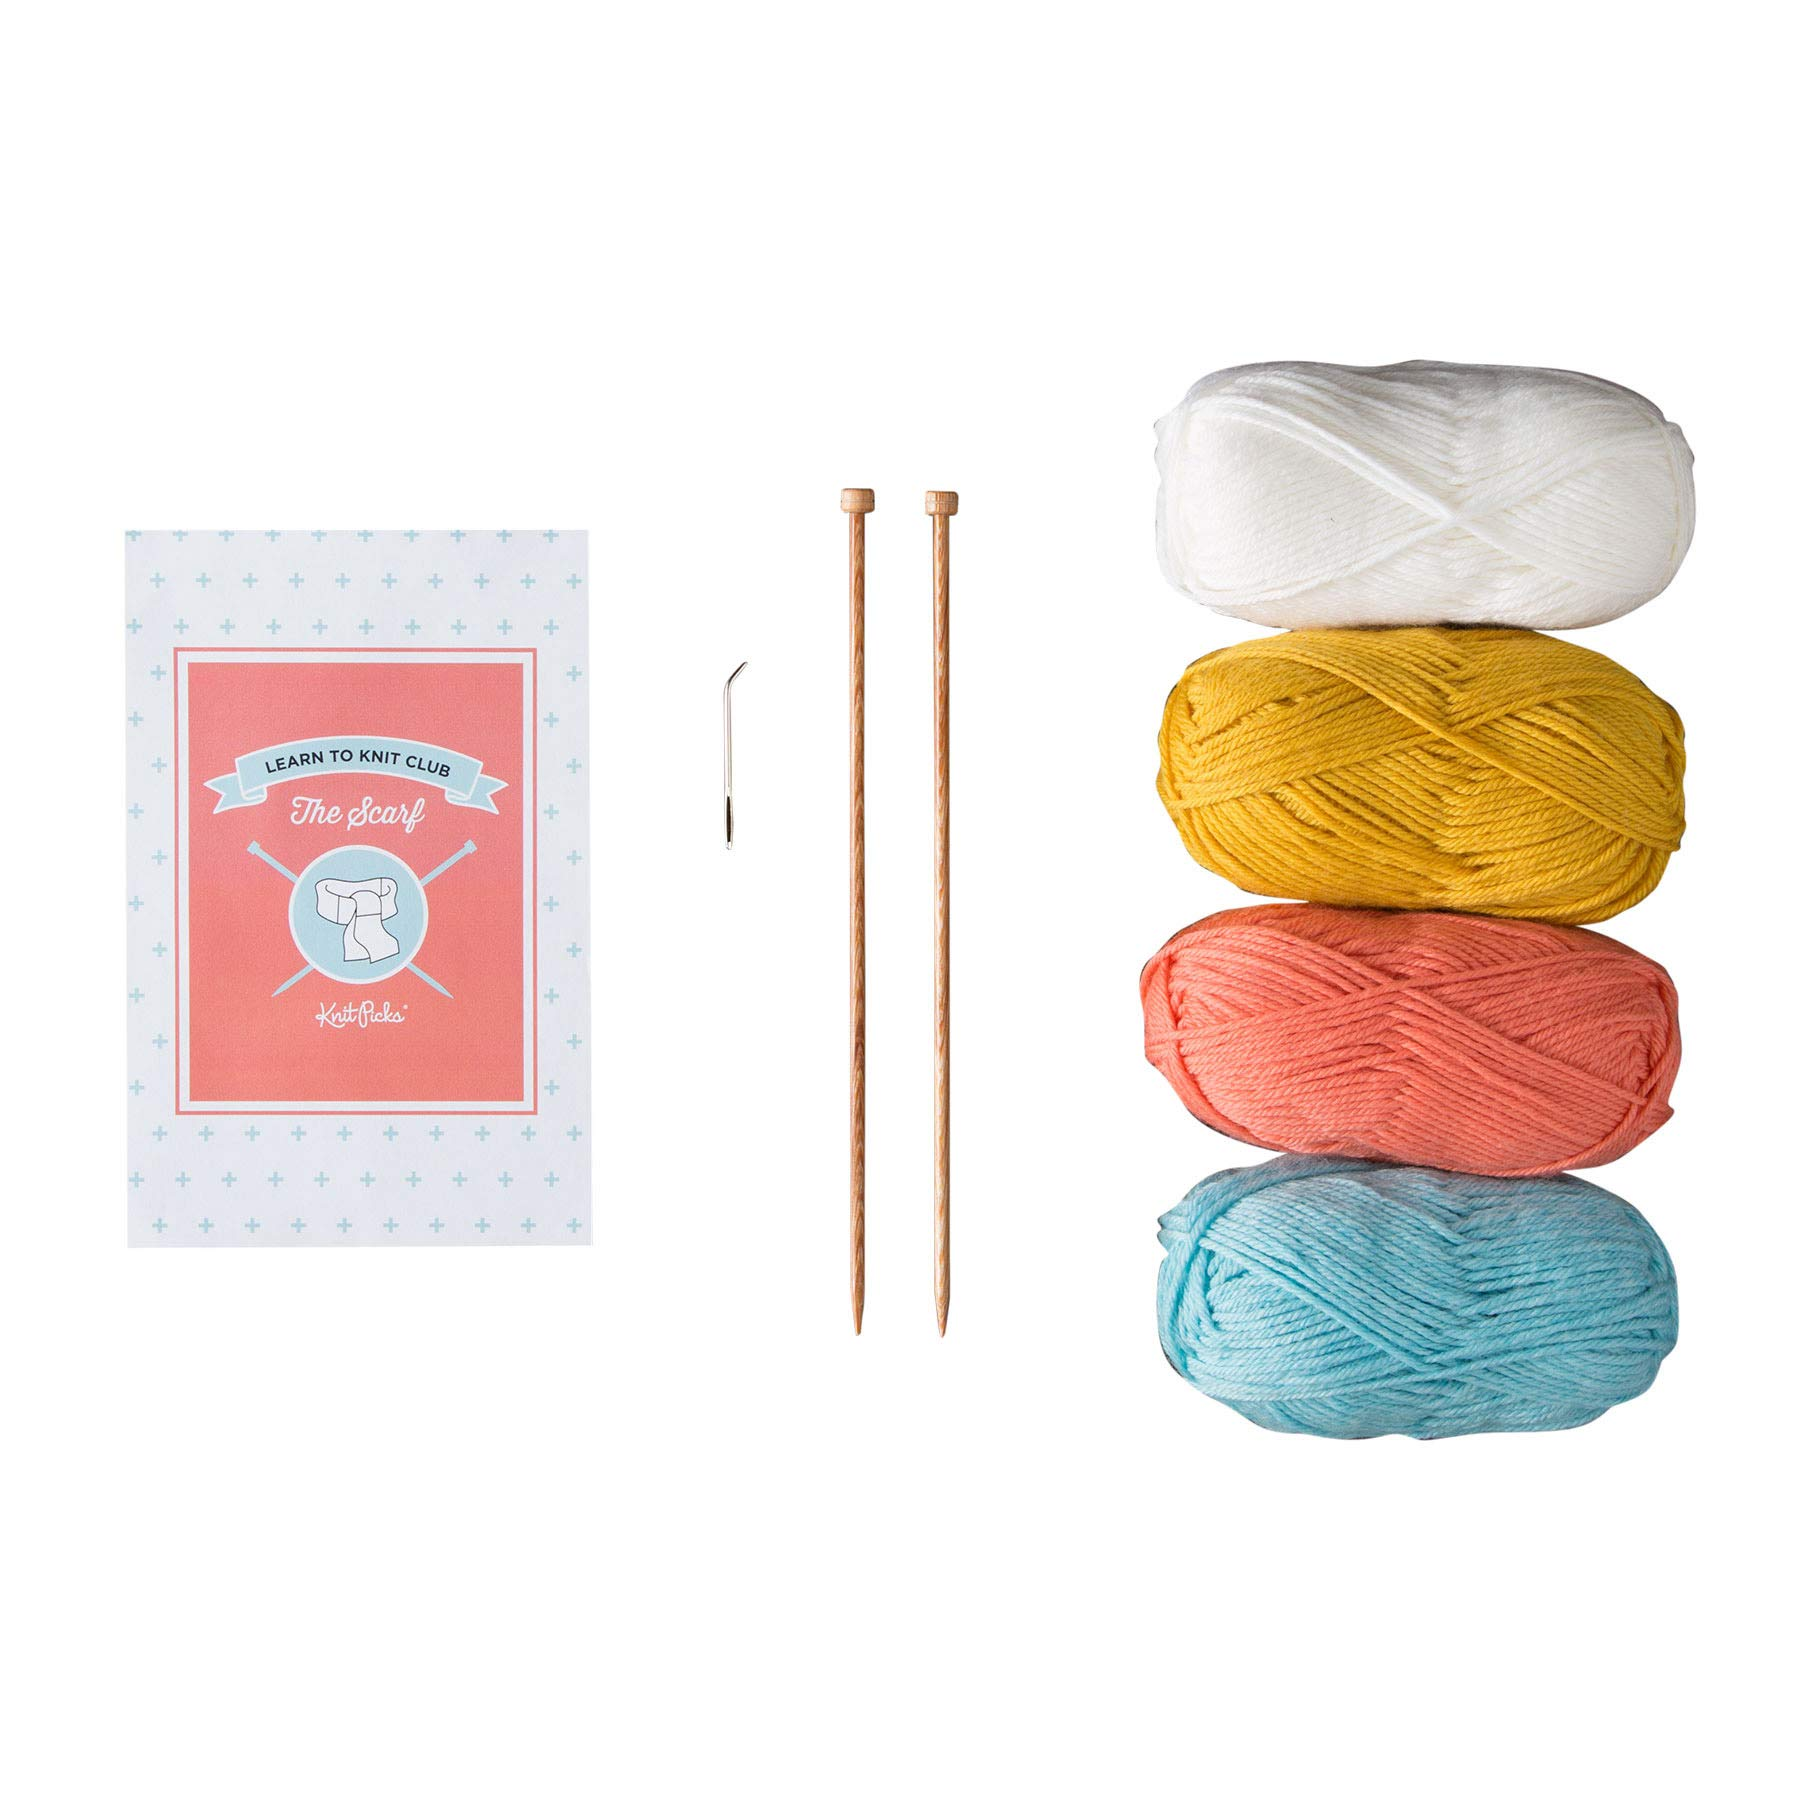 Knit Picks Learn to Knit Club: The Scarf - Beginner Knitting Kit